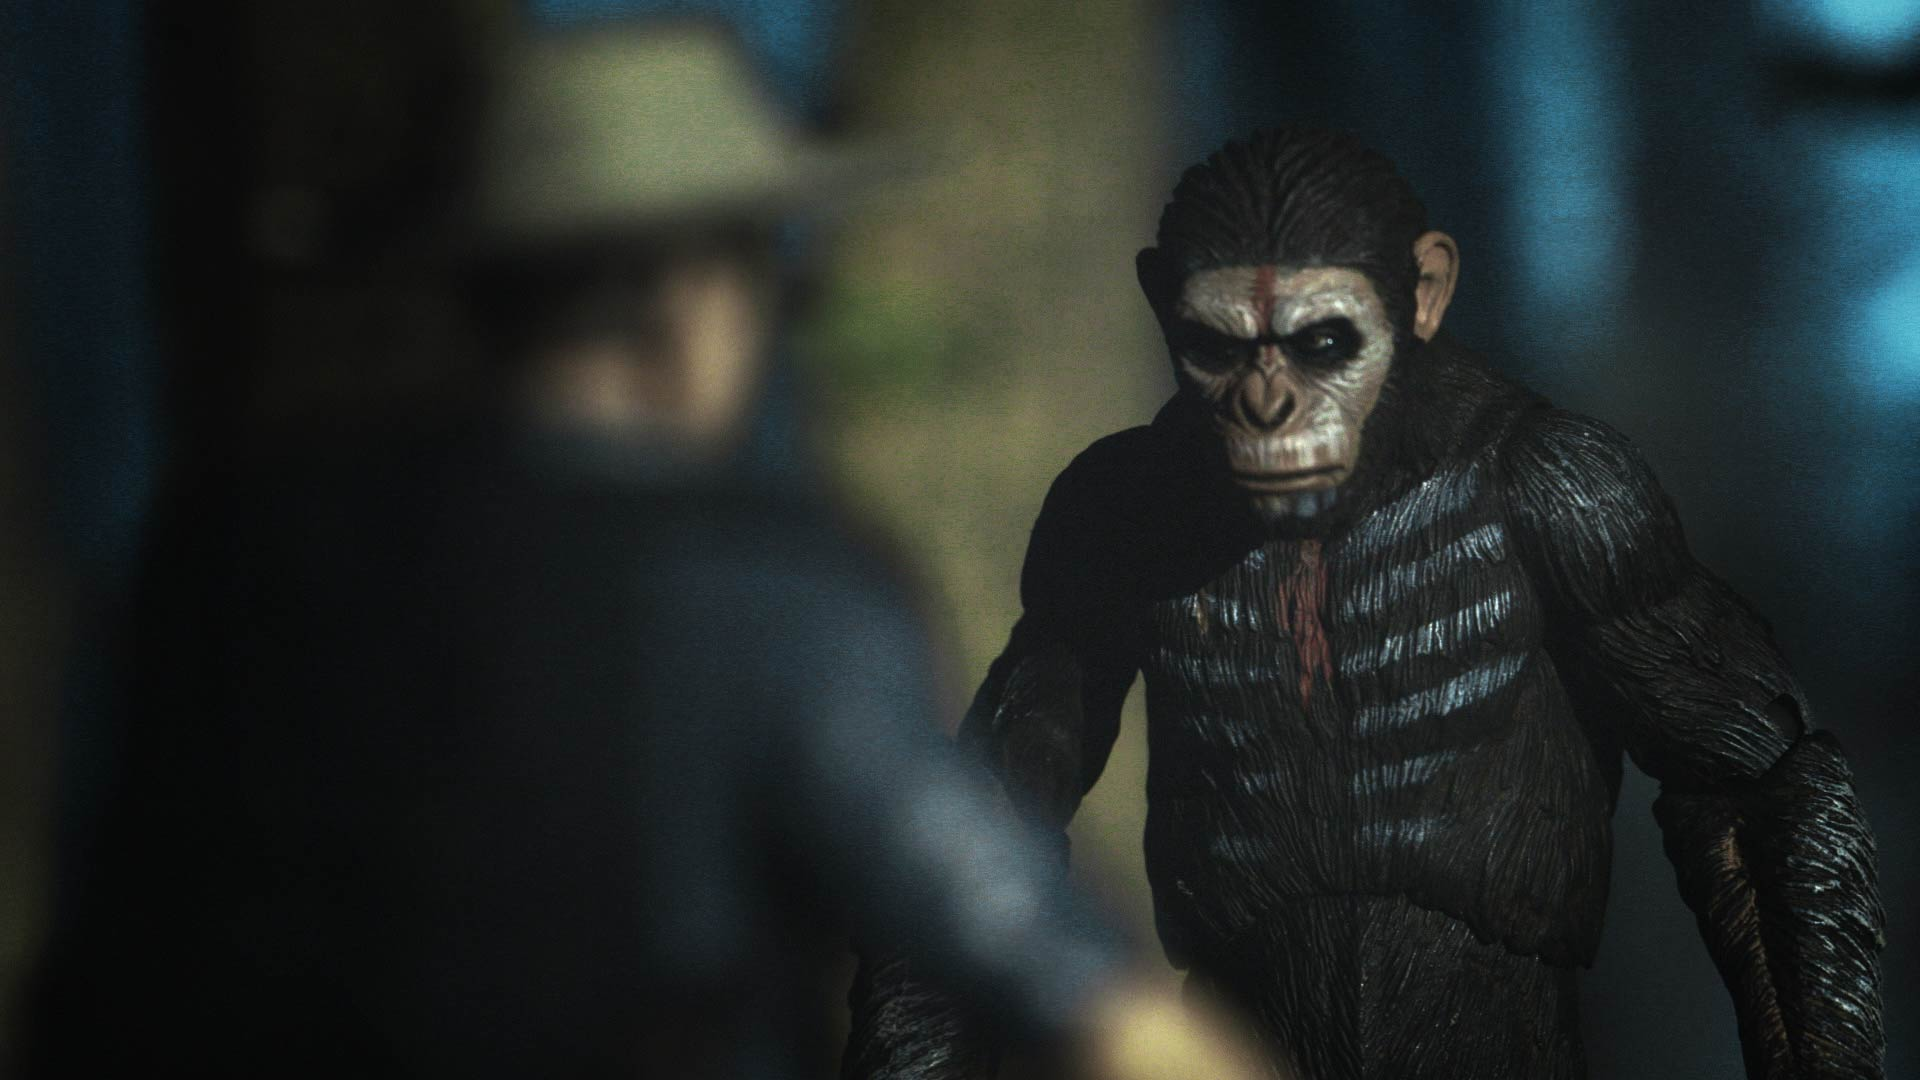 apes_screengrab_08